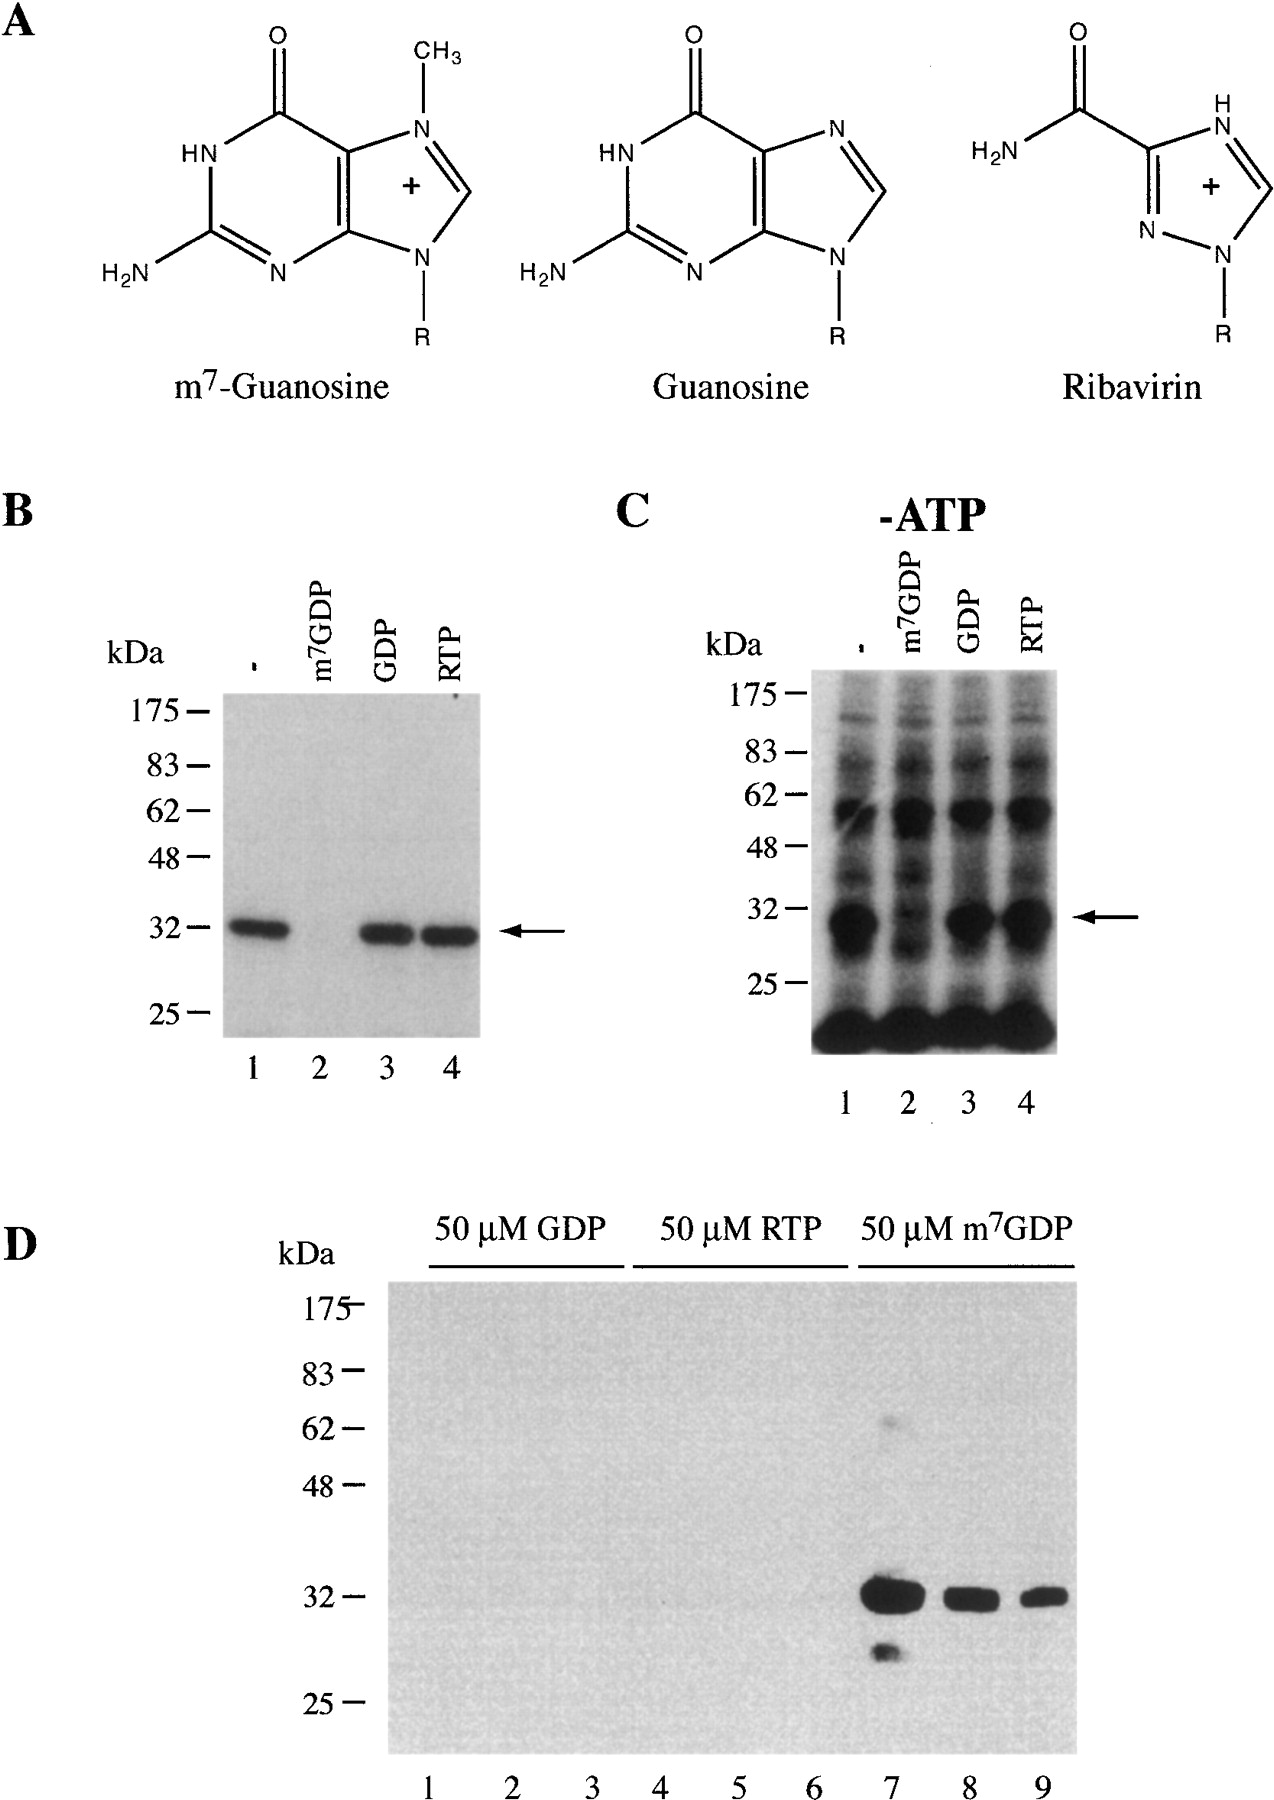 Ribavirin Is Not A Functional Mimic Of The 7 Methyl Guanosine MRNA Cap